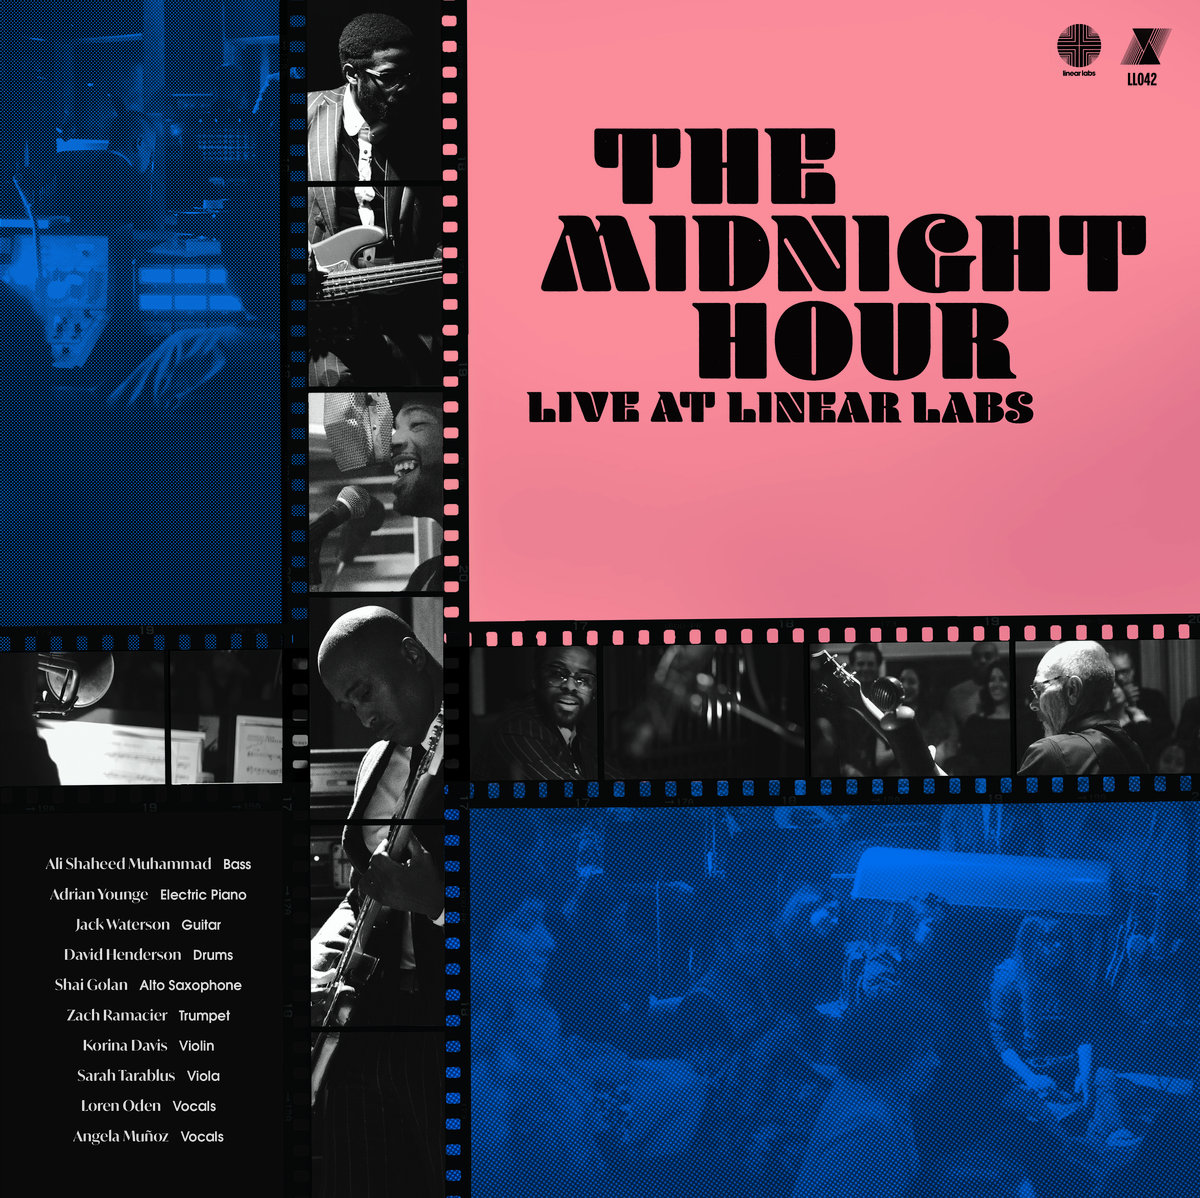 The Midnight Hour's tracks